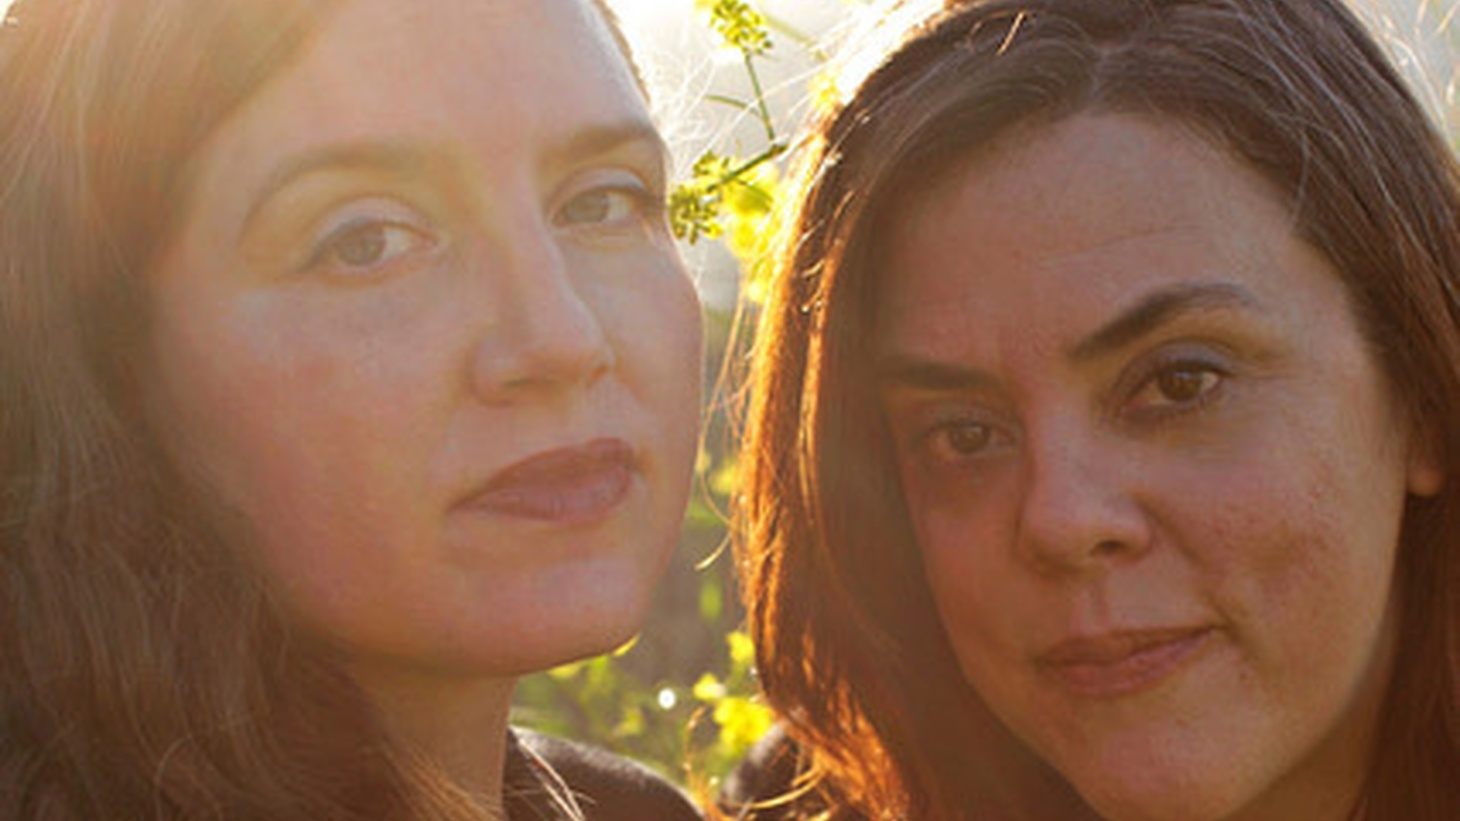 The Be Good Tanyas' founding members Jolie Holland and Samantha Parton have reunited to make a little more music together.